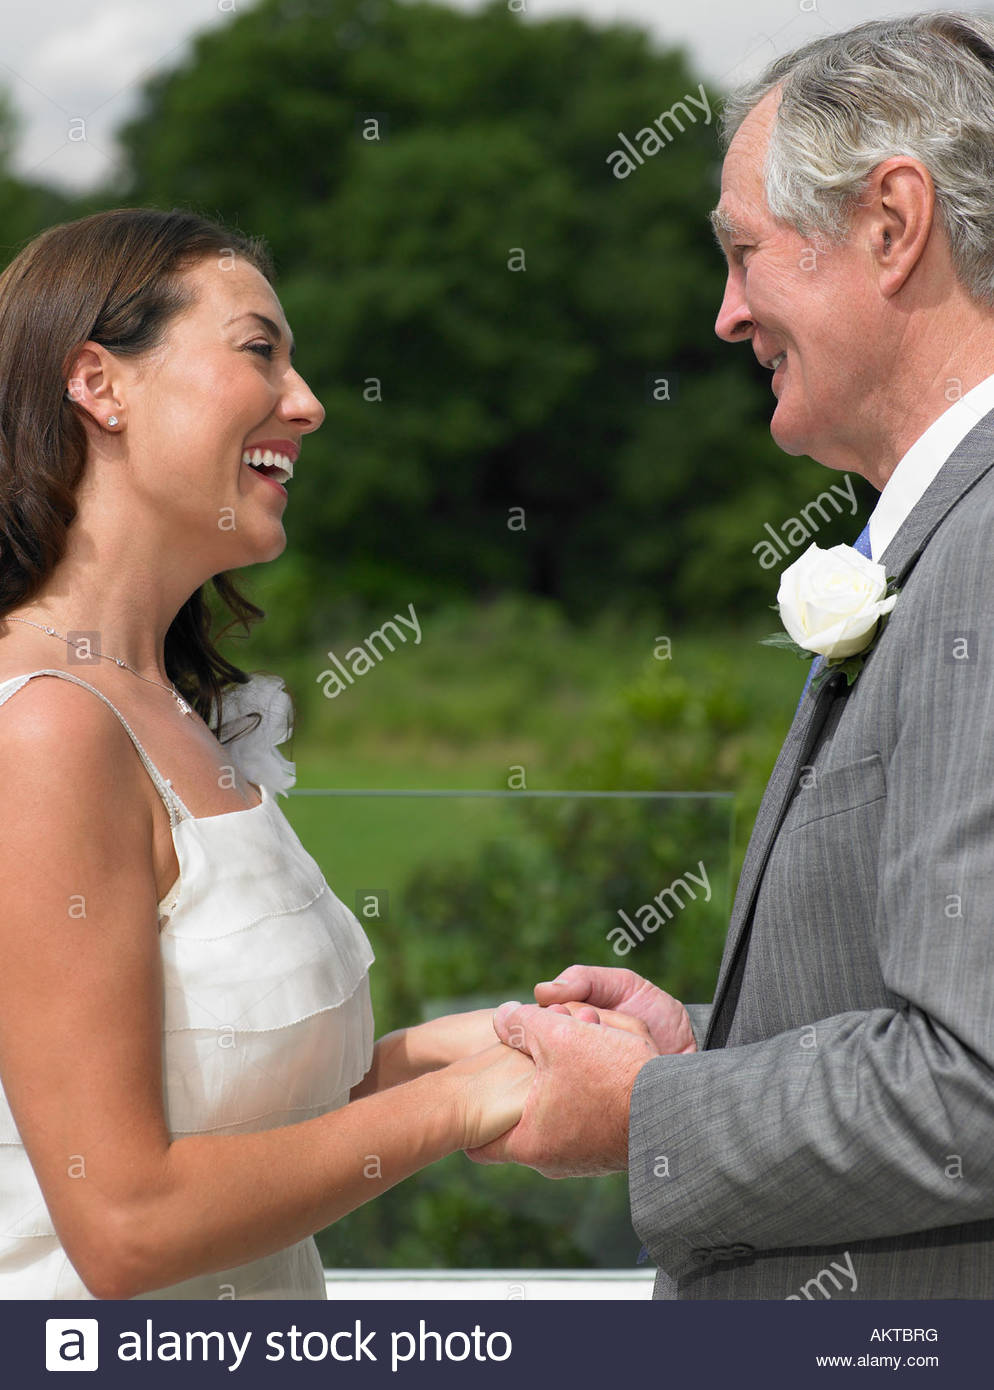 The bride and her father holding hands - Stock Image